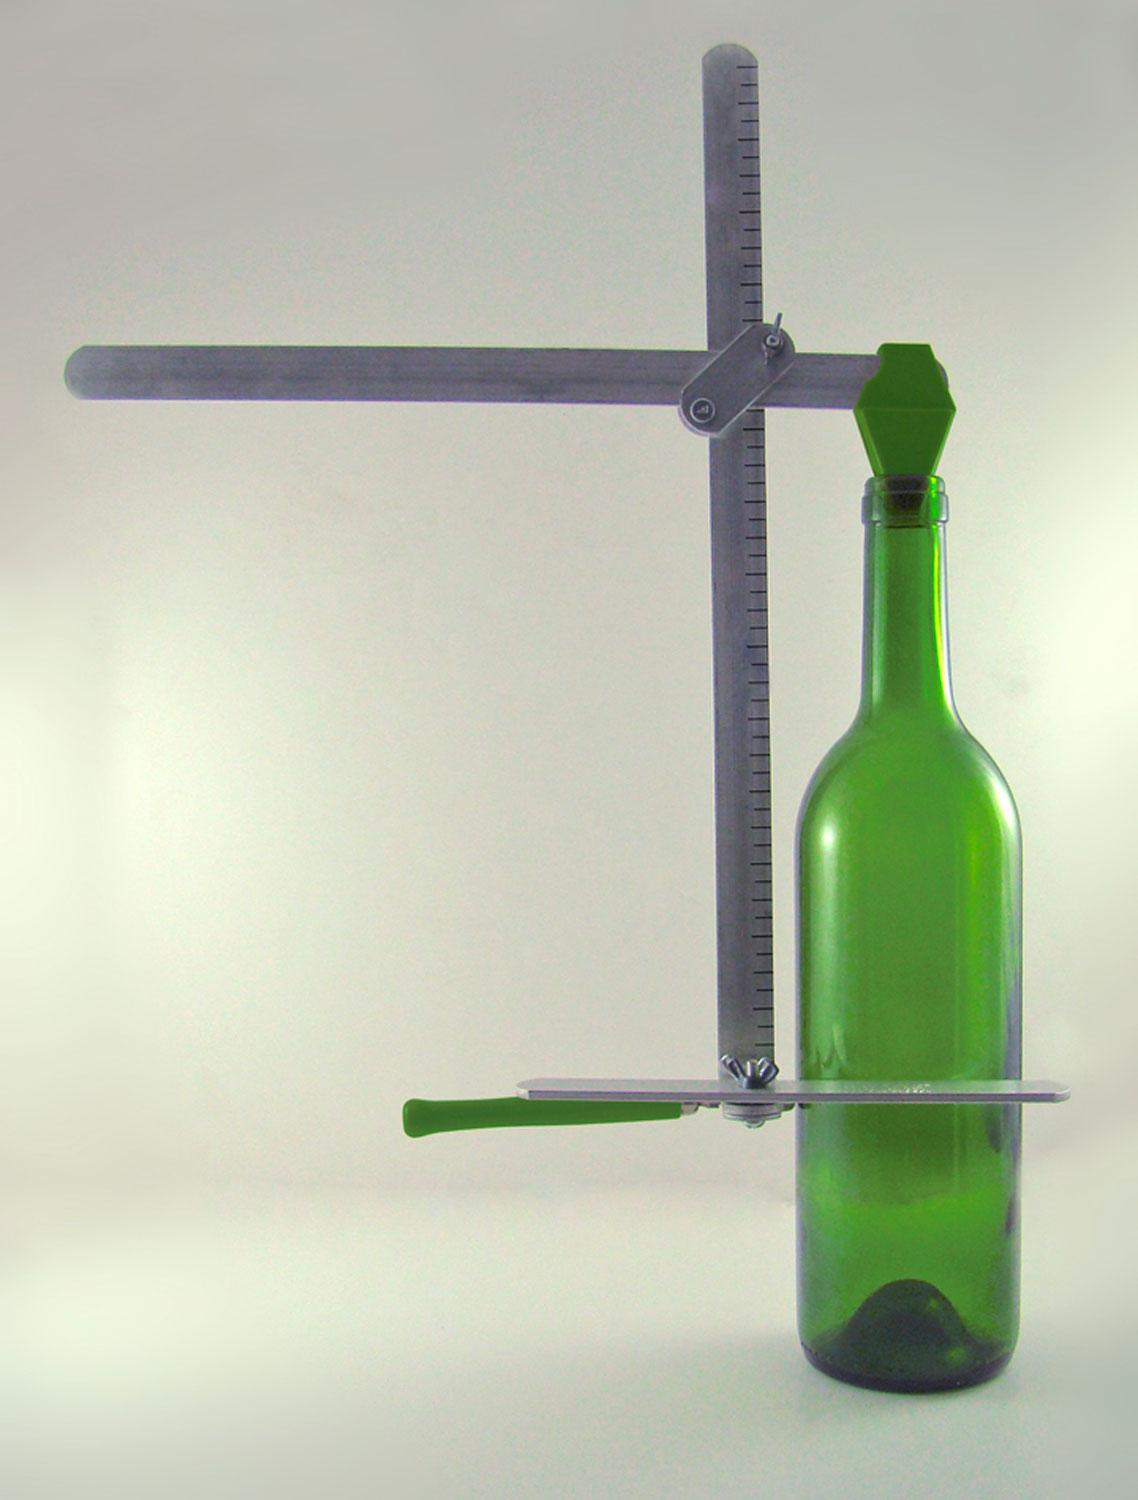 Generation green g2 bottle cutter tools supplies for How to use a glass cutter on a bottle